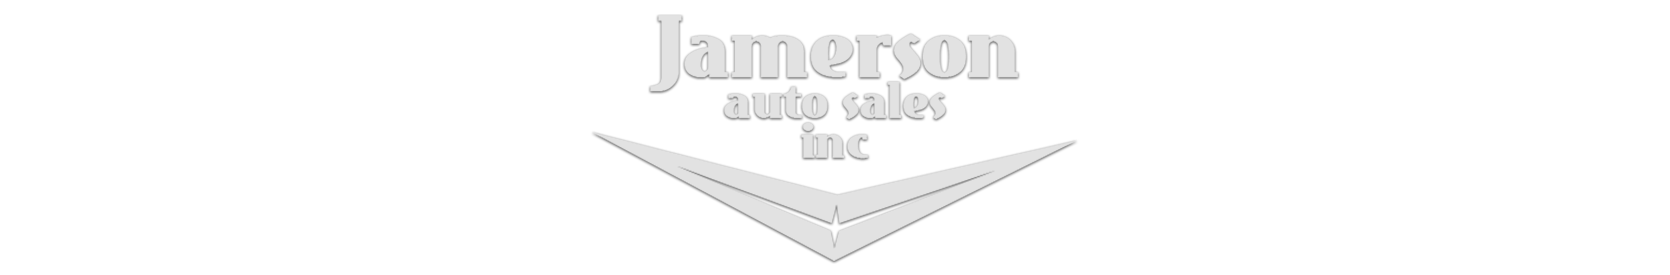 JAMERSON AUTO SALES INC.